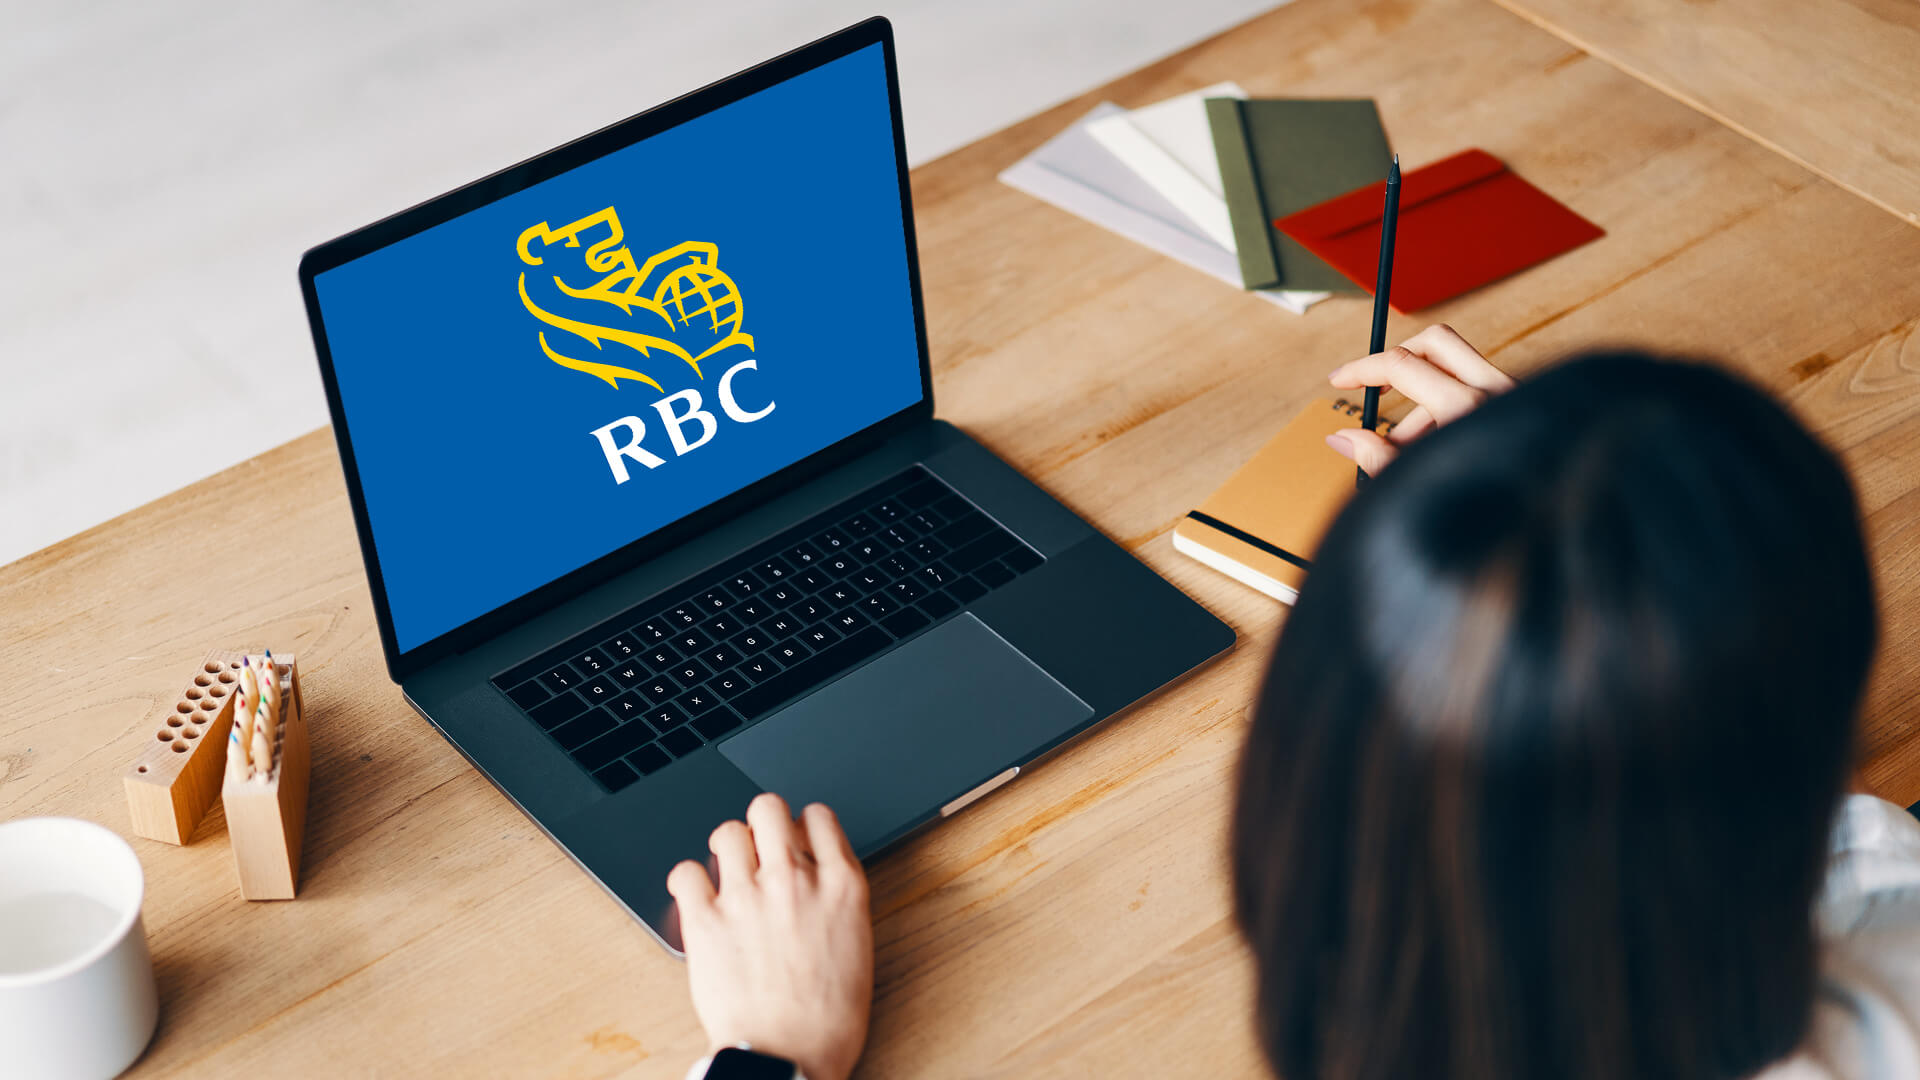 RBC bank computer login